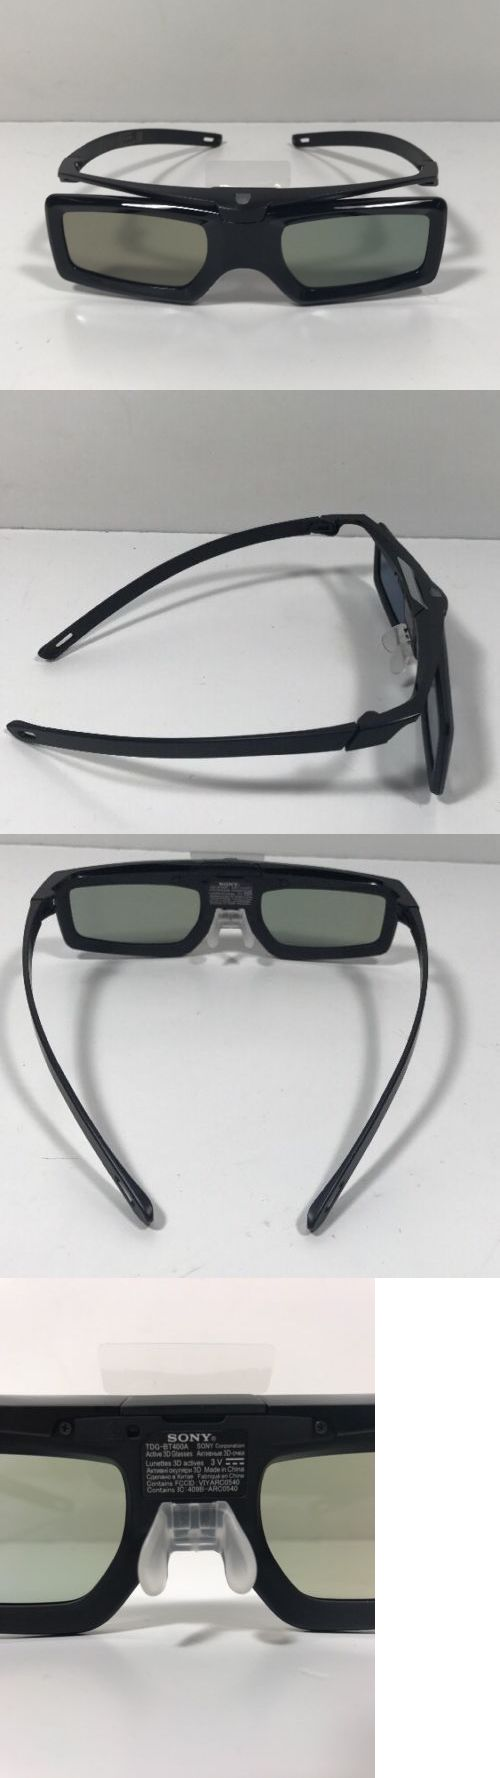 3D TV Glasses and Accessories: Lot Of 2 Sony Tdg-Bt400a 3D Active Shutter Glasses -> BUY IT NOW ONLY: $46.99 on eBay!